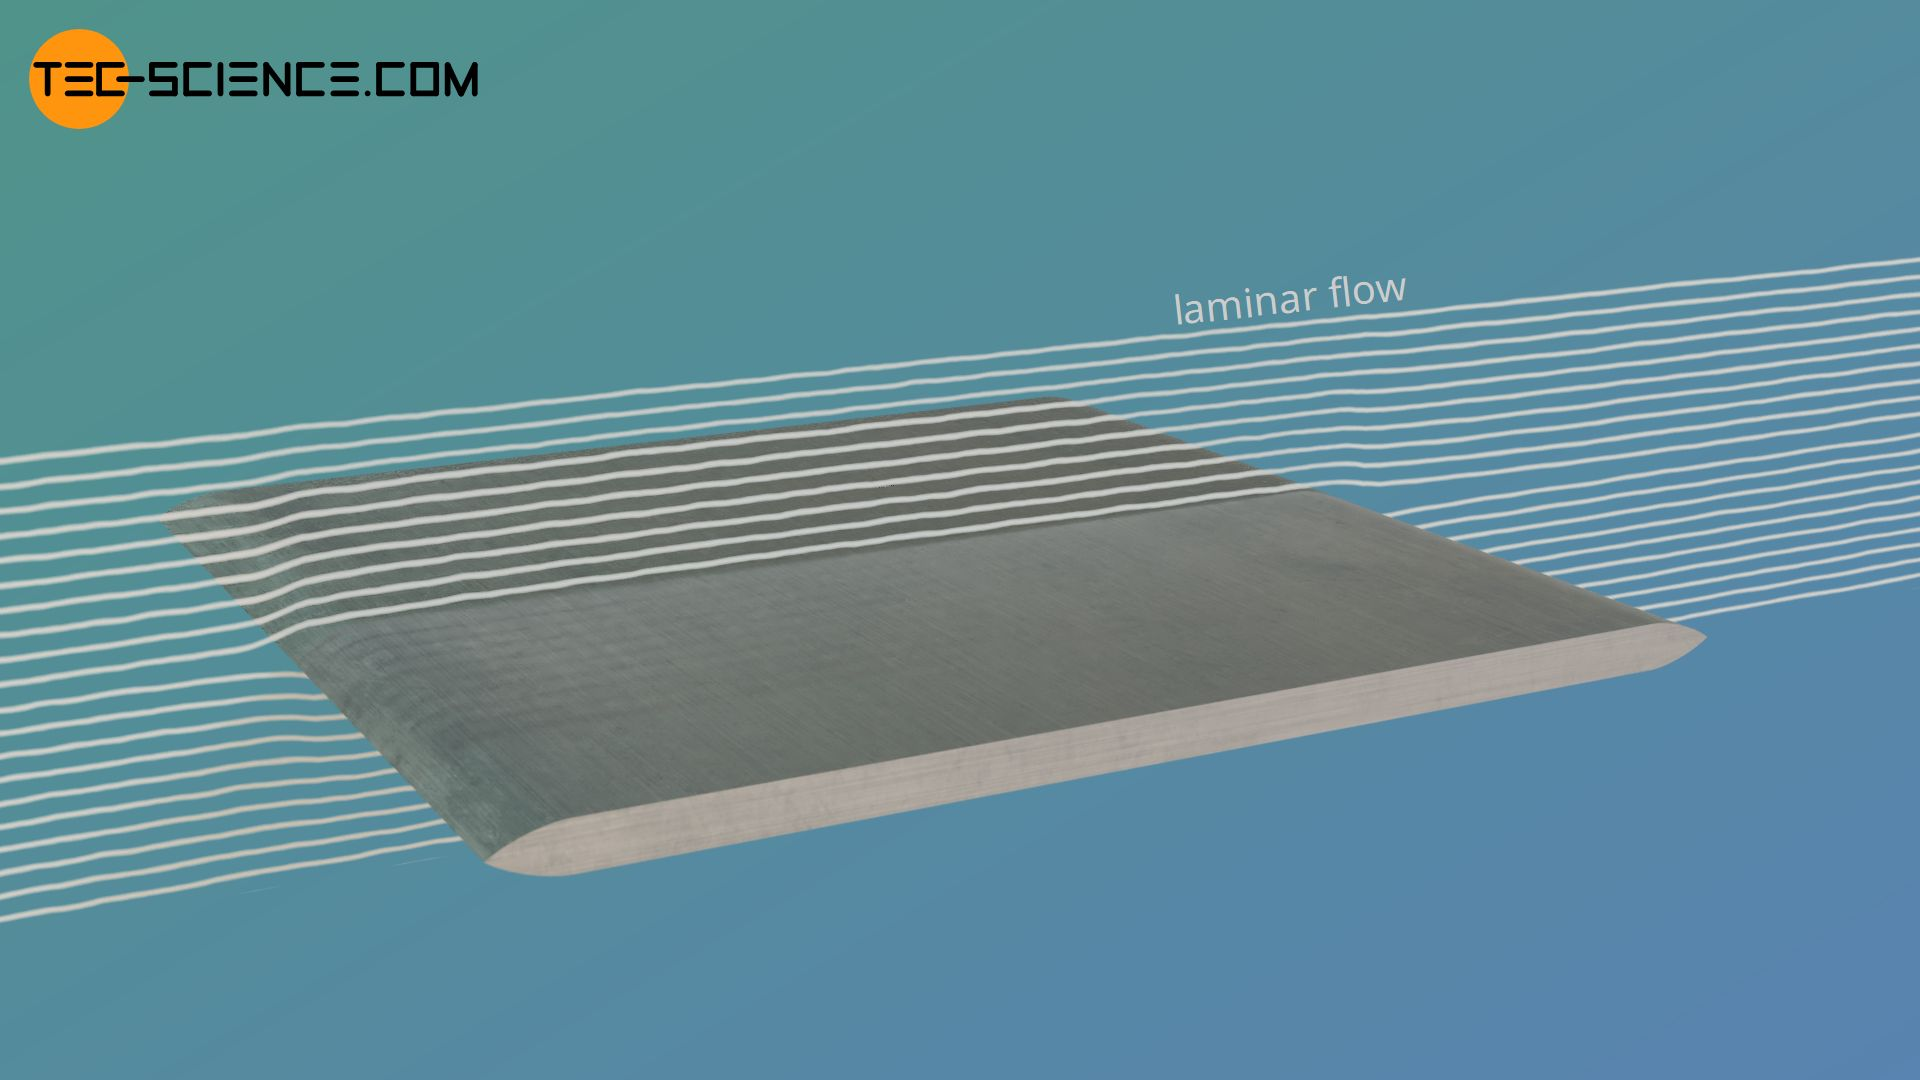 Convective heat transfer at a flat plate with laminar flow